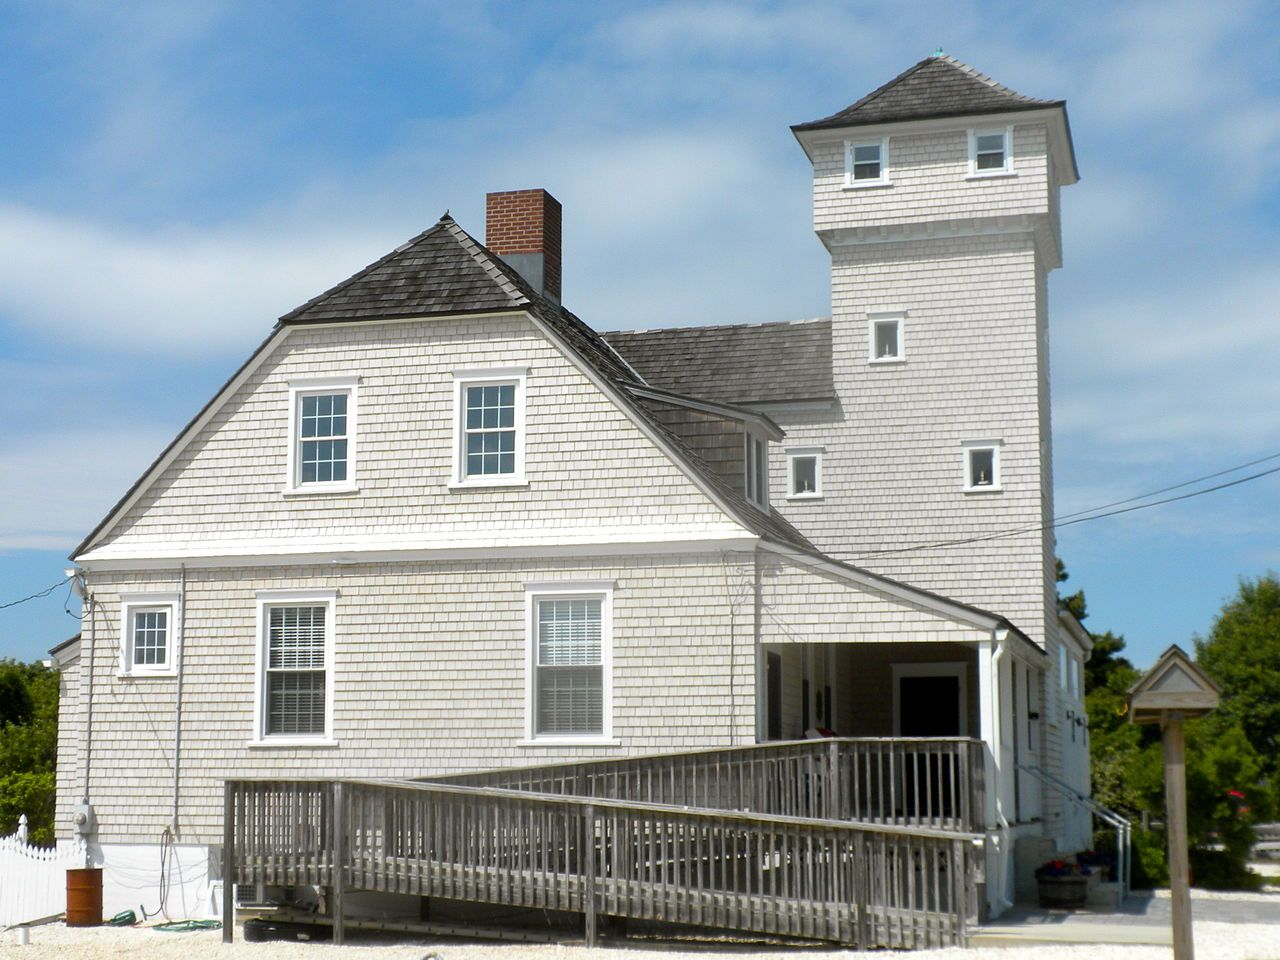 U.S. LifeSaving Station No. 35 in Cape May County, New